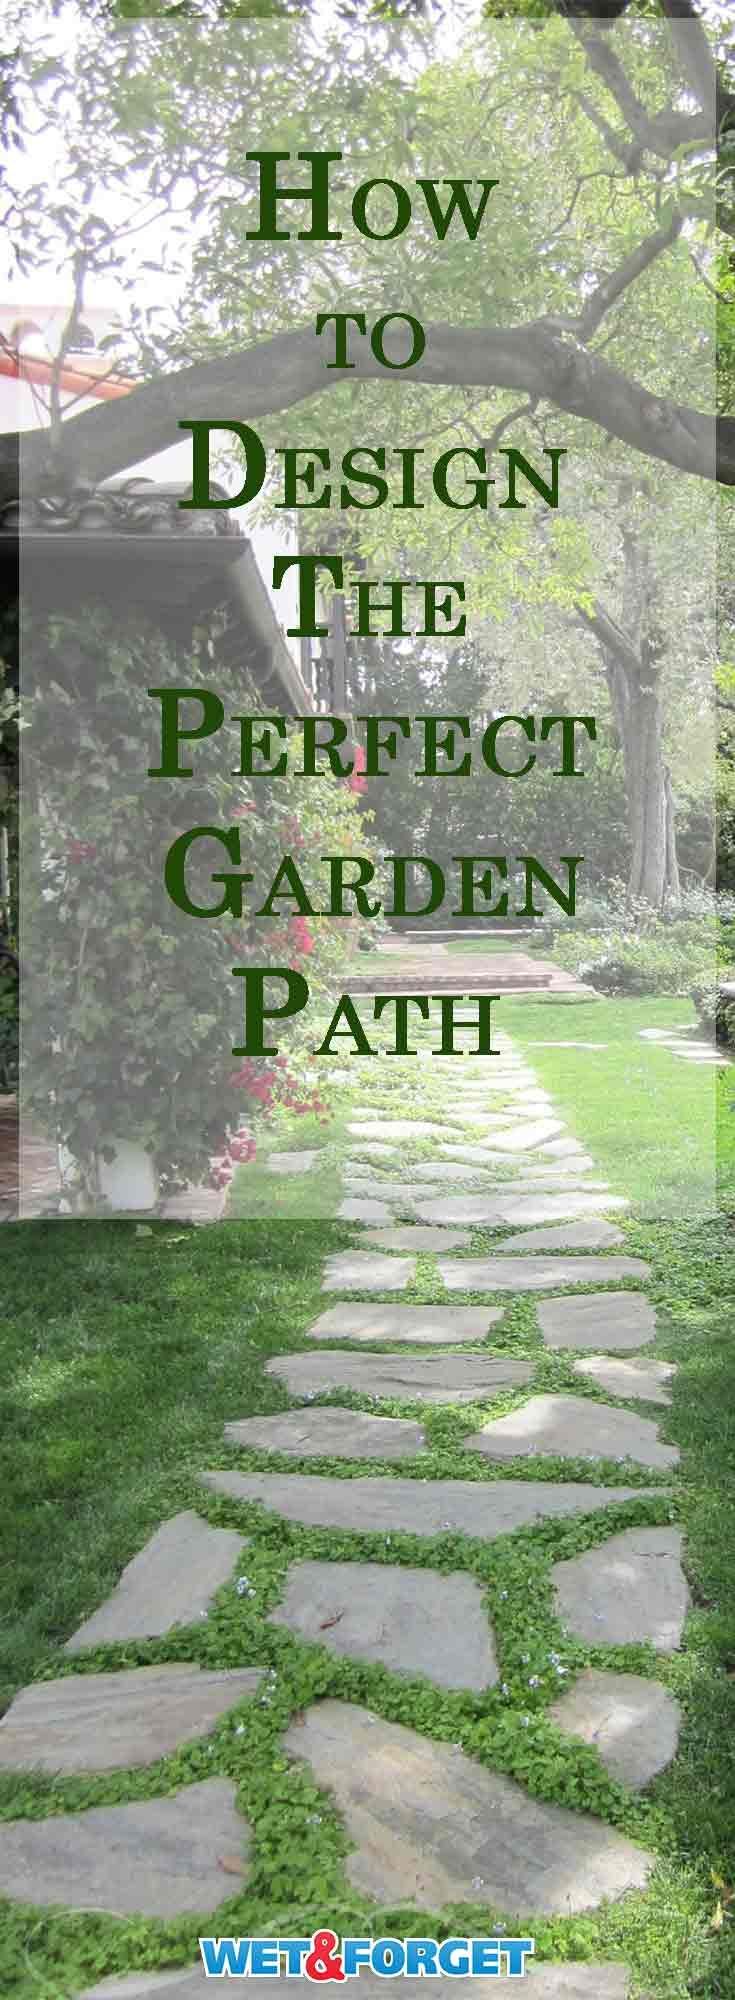 The most beautiful gardens include garden paths that please the eye, invite a stroll around the property, and accent the landscape. A well-designed, well-built garden path can be a work of art all on its own.